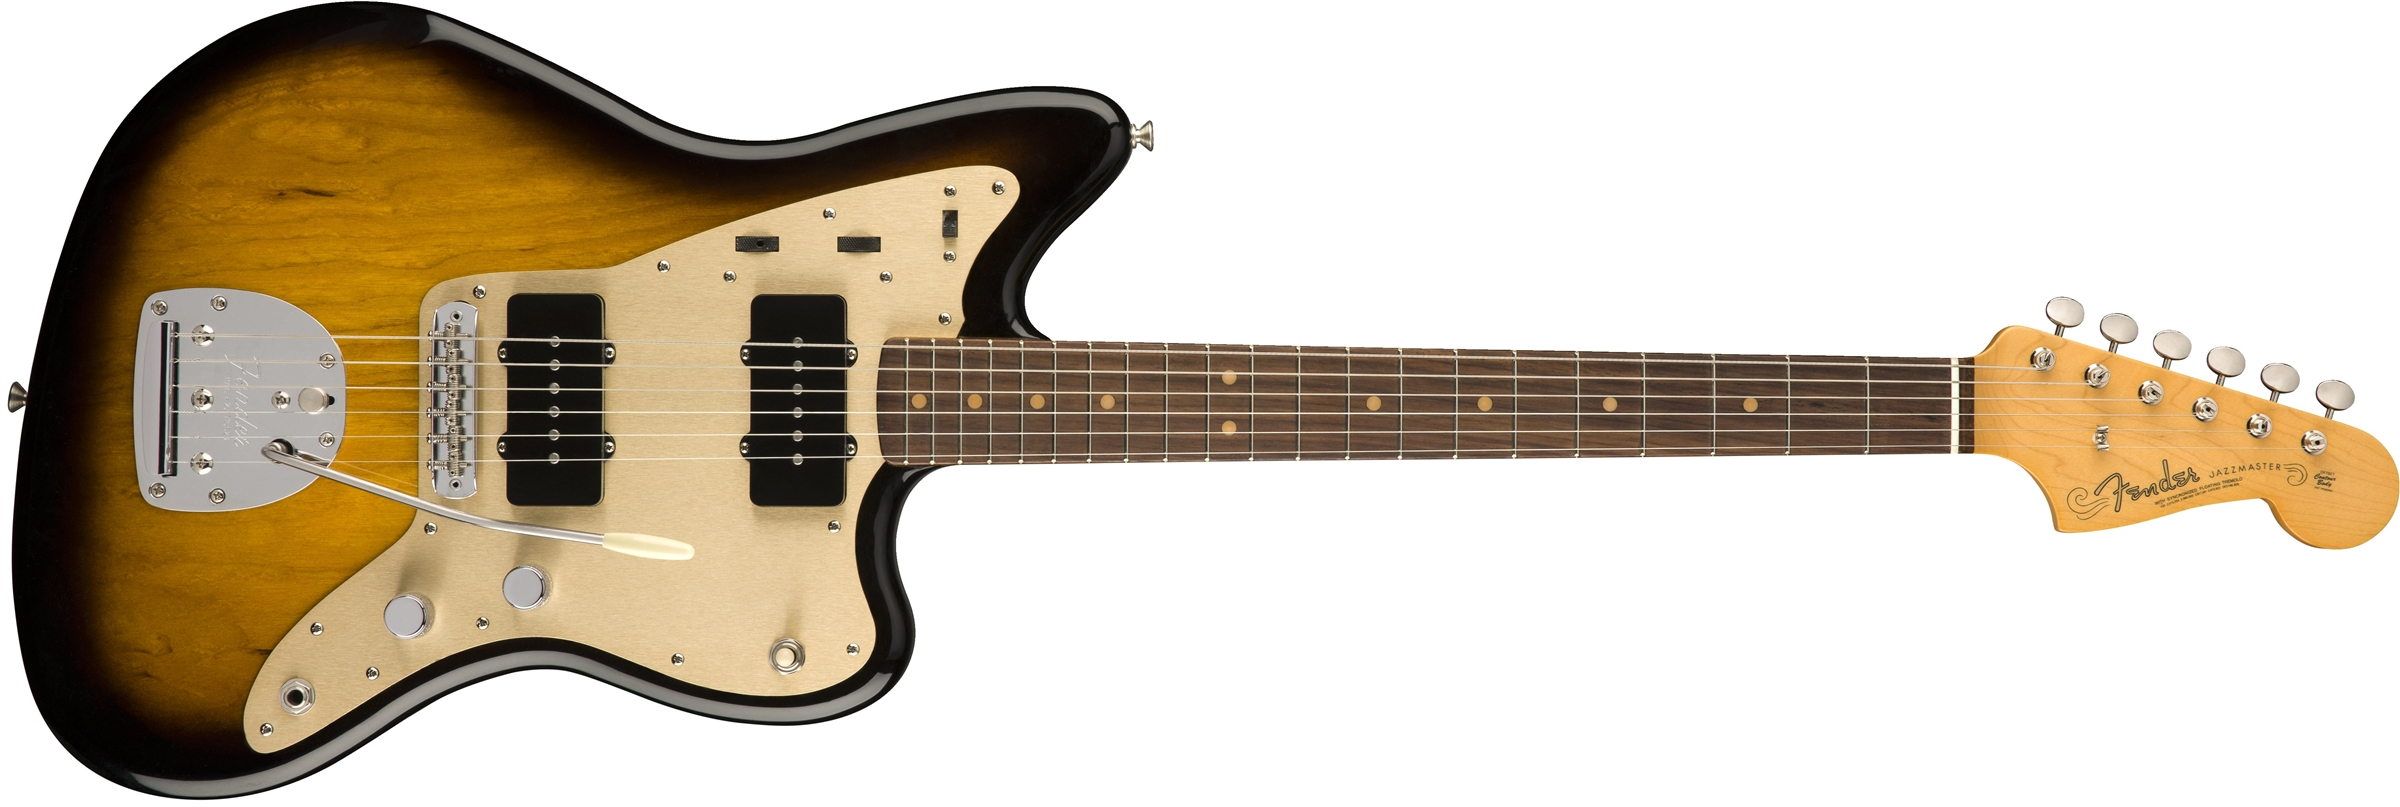 limited edition 60th anniversary 39 58 jazzmaster electric guitars. Black Bedroom Furniture Sets. Home Design Ideas